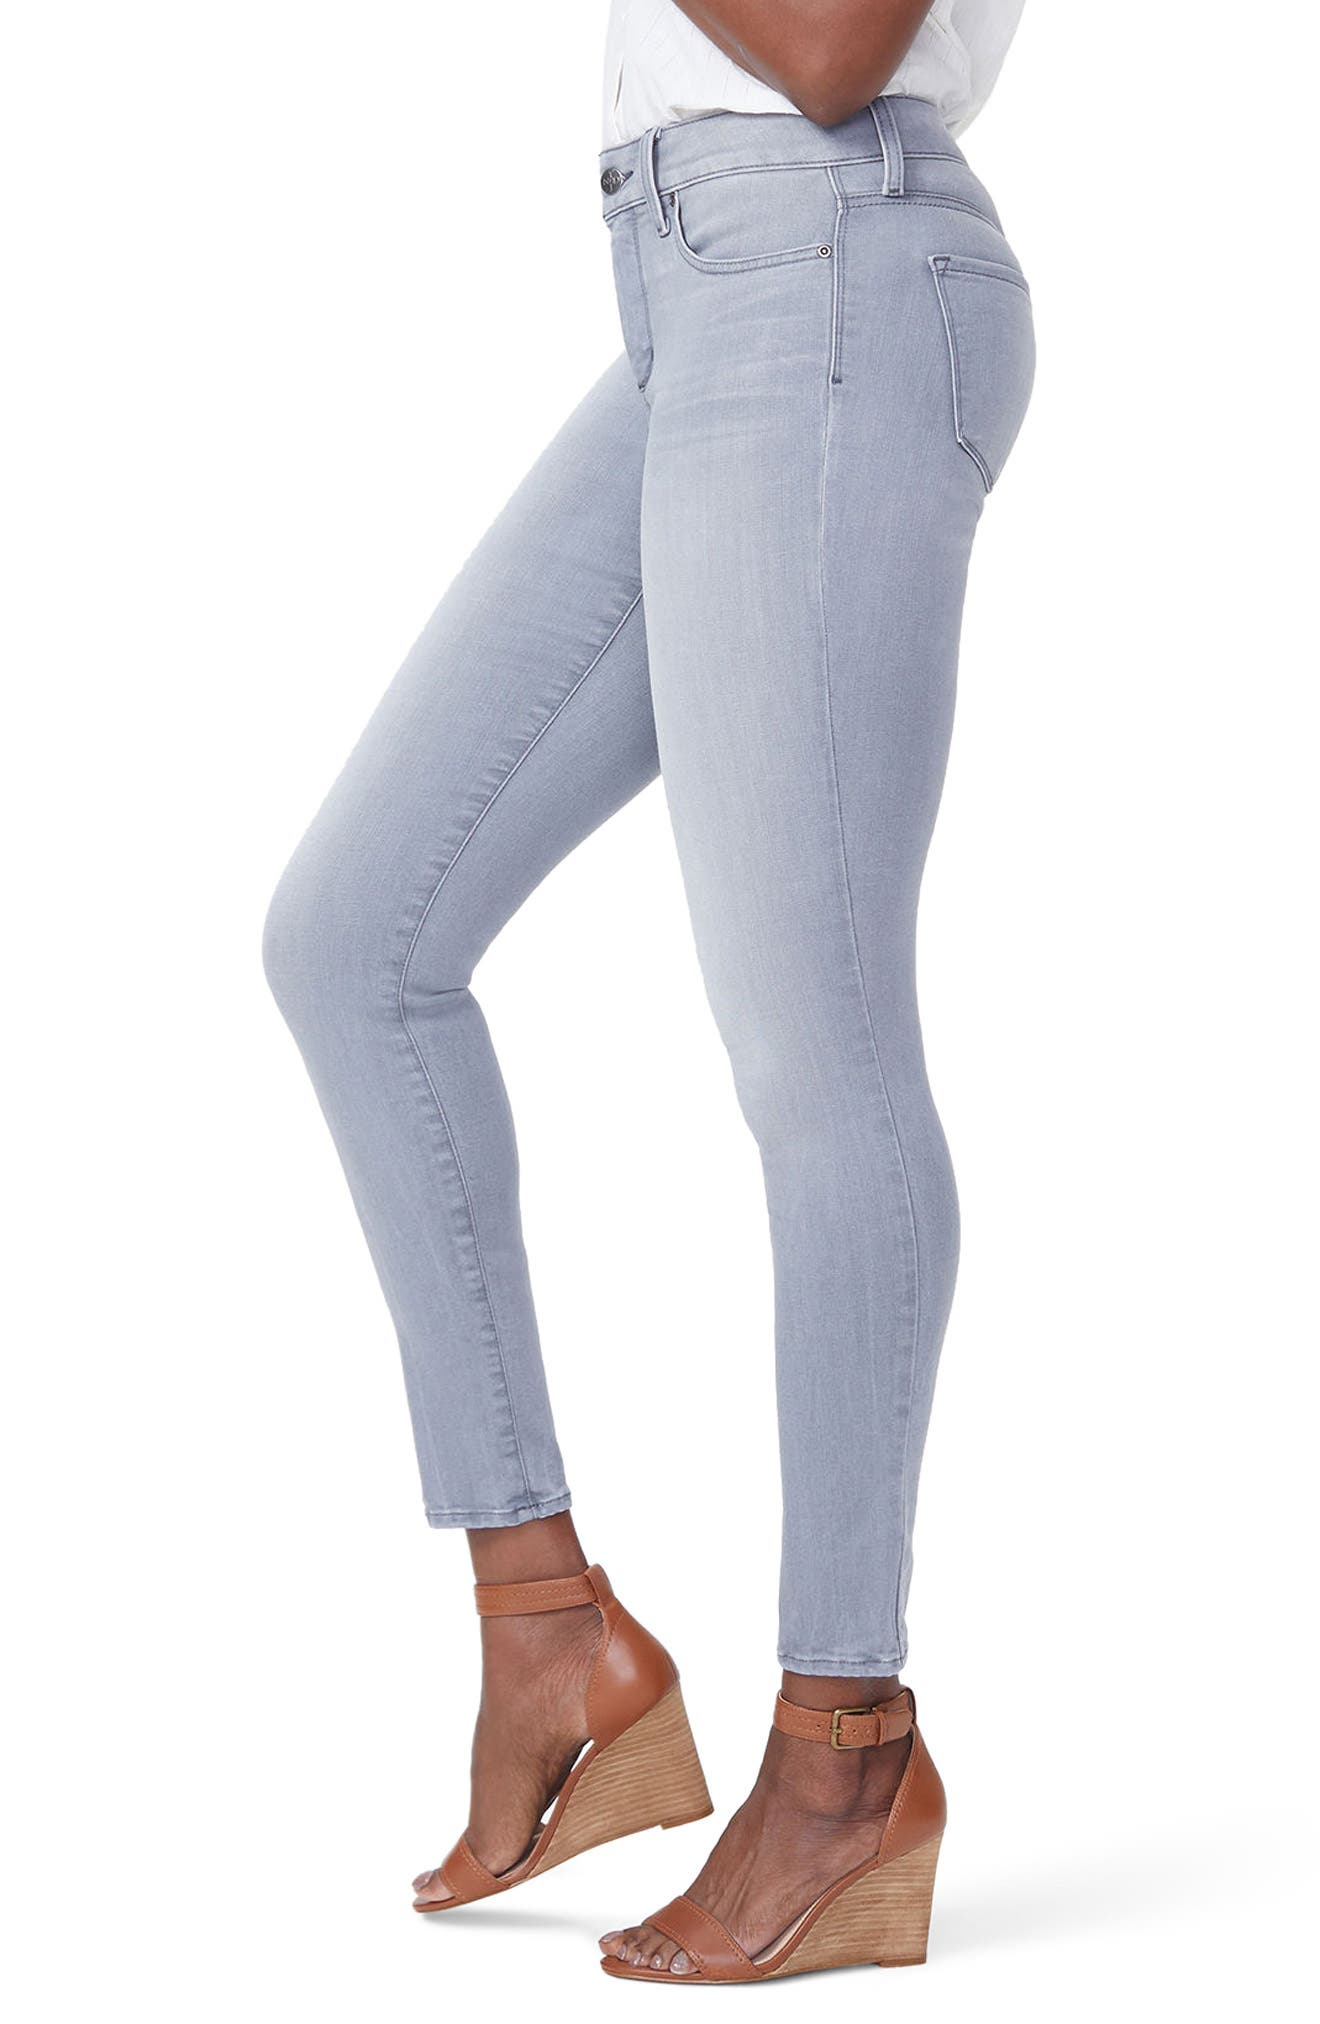 Ami Skinny Jeans,                             Alternate thumbnail 3, color,                             020